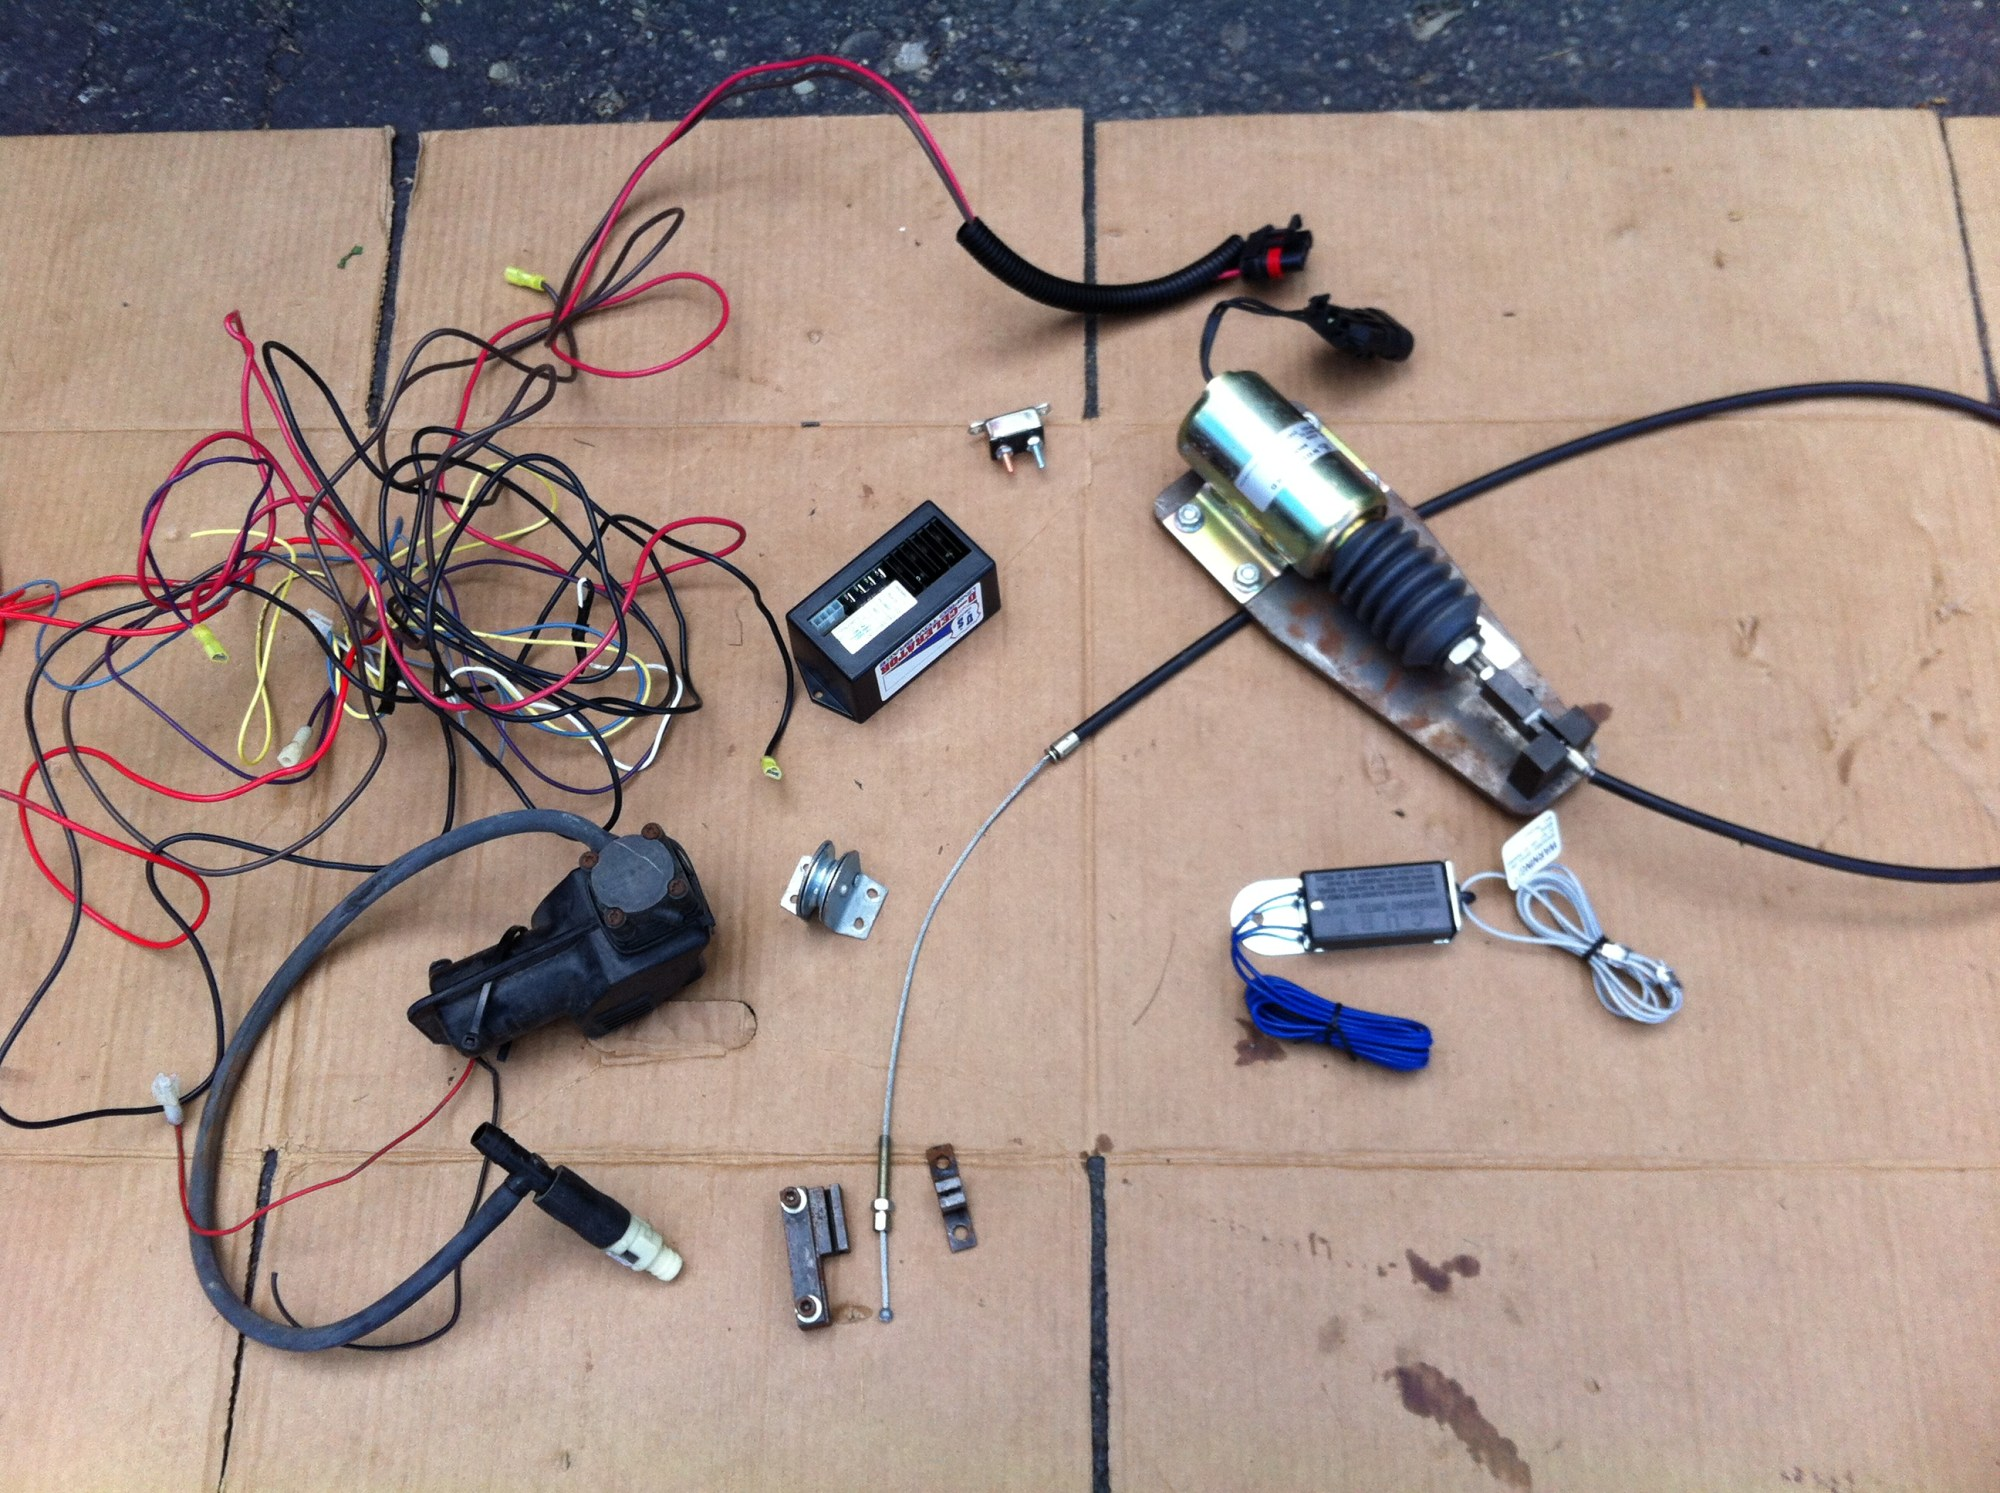 hight resolution of setting up to flat tow an f 150 irv2 forums car wiring harness electric actuator solenoid